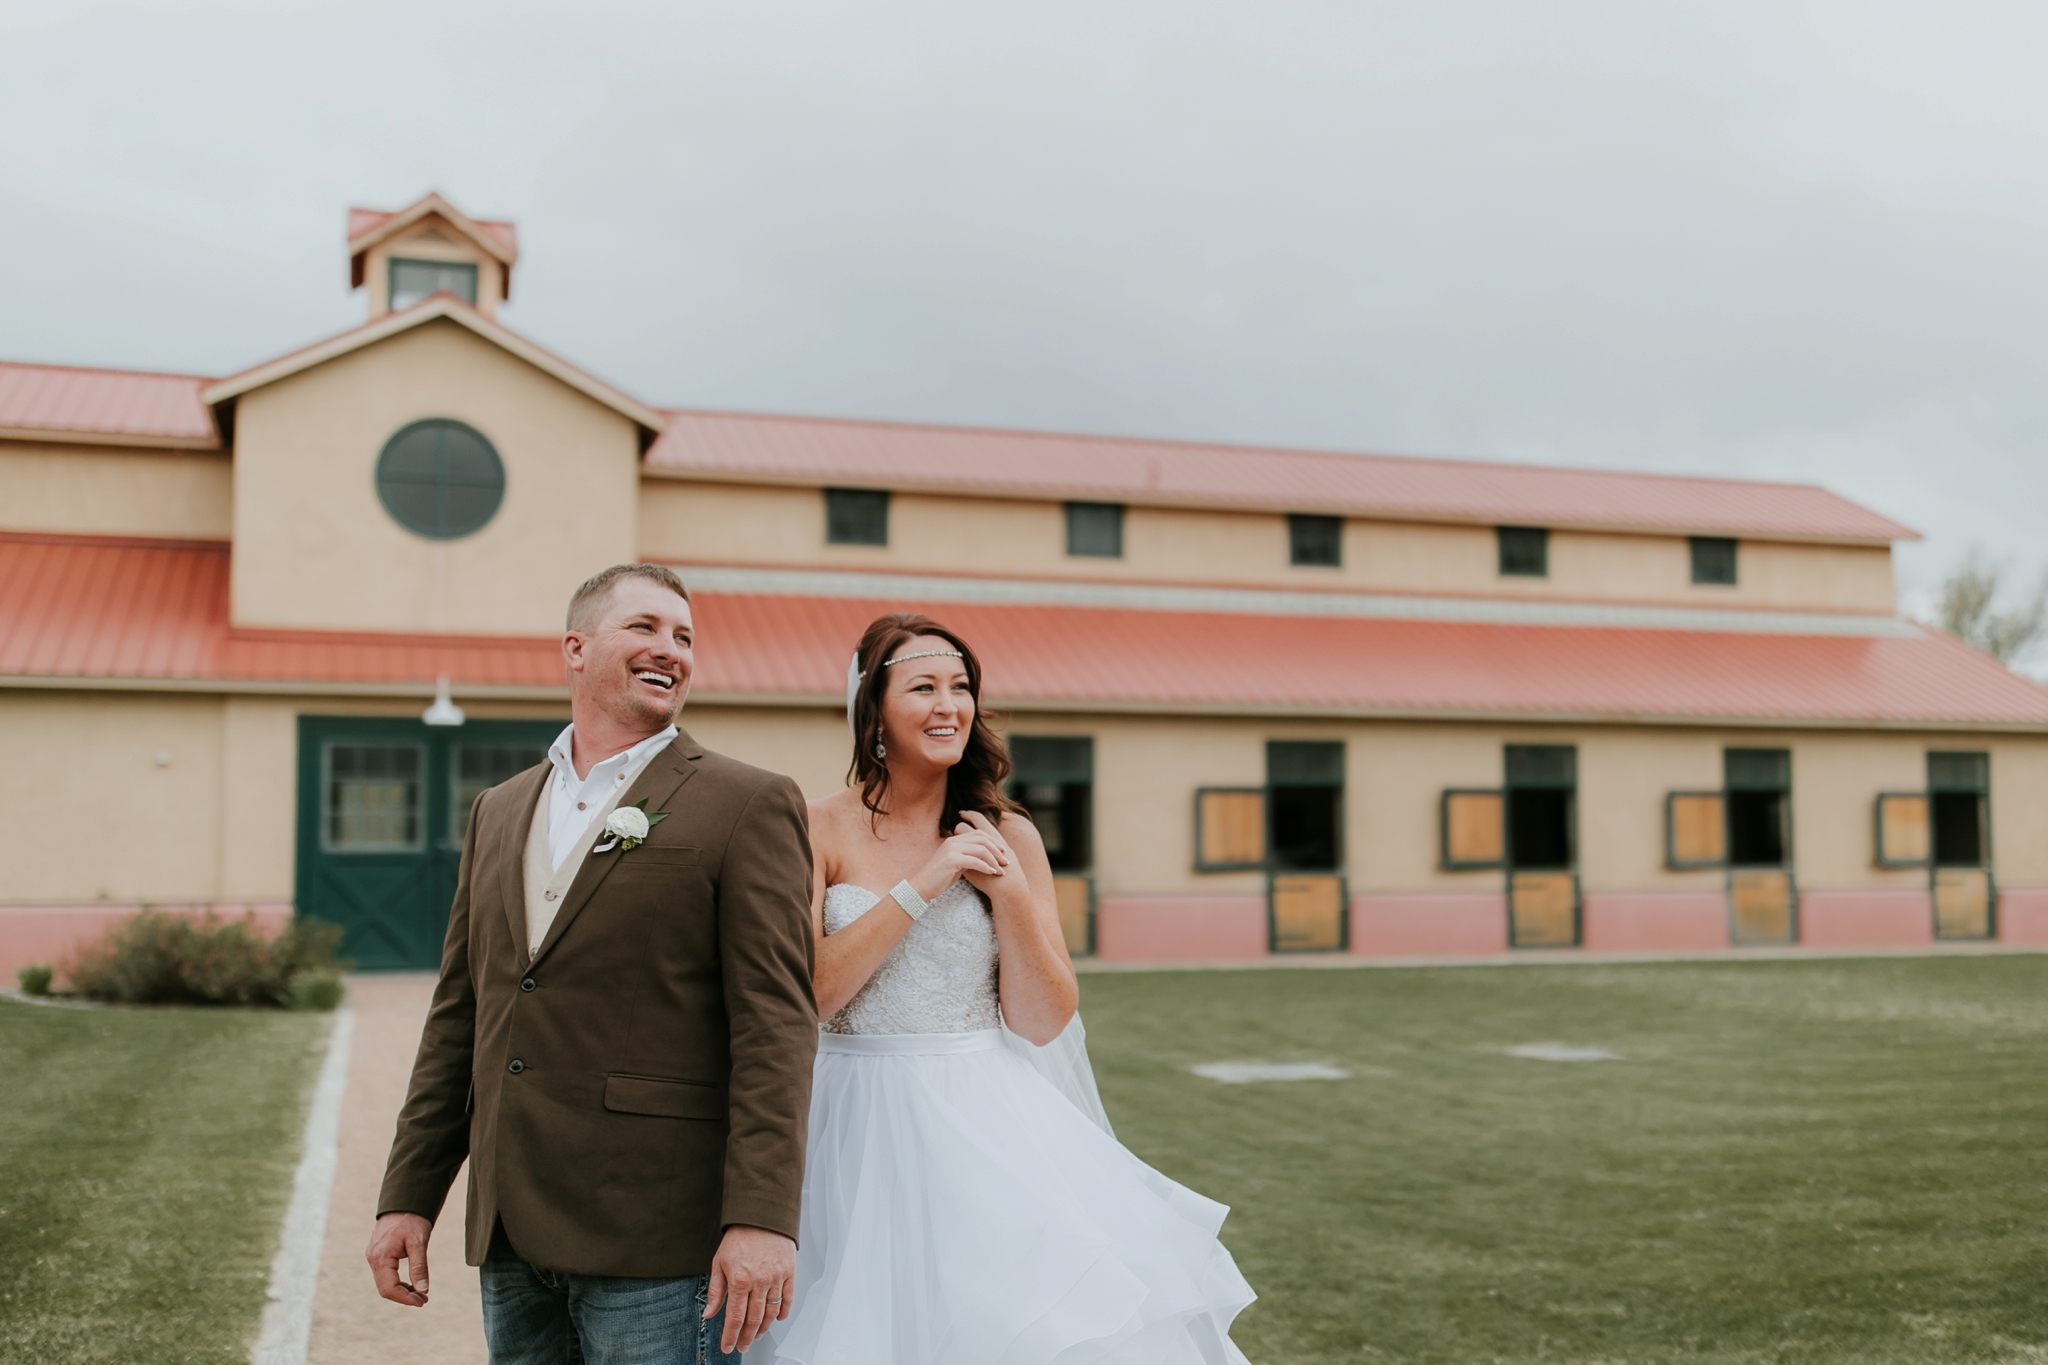 Alicia+lucia+photography+-+albuquerque+wedding+photographer+-+santa+fe+wedding+photography+-+new+mexico+wedding+photographer+-+summer+wedding+gowns+-+summer+wedding+style__0063.jpg